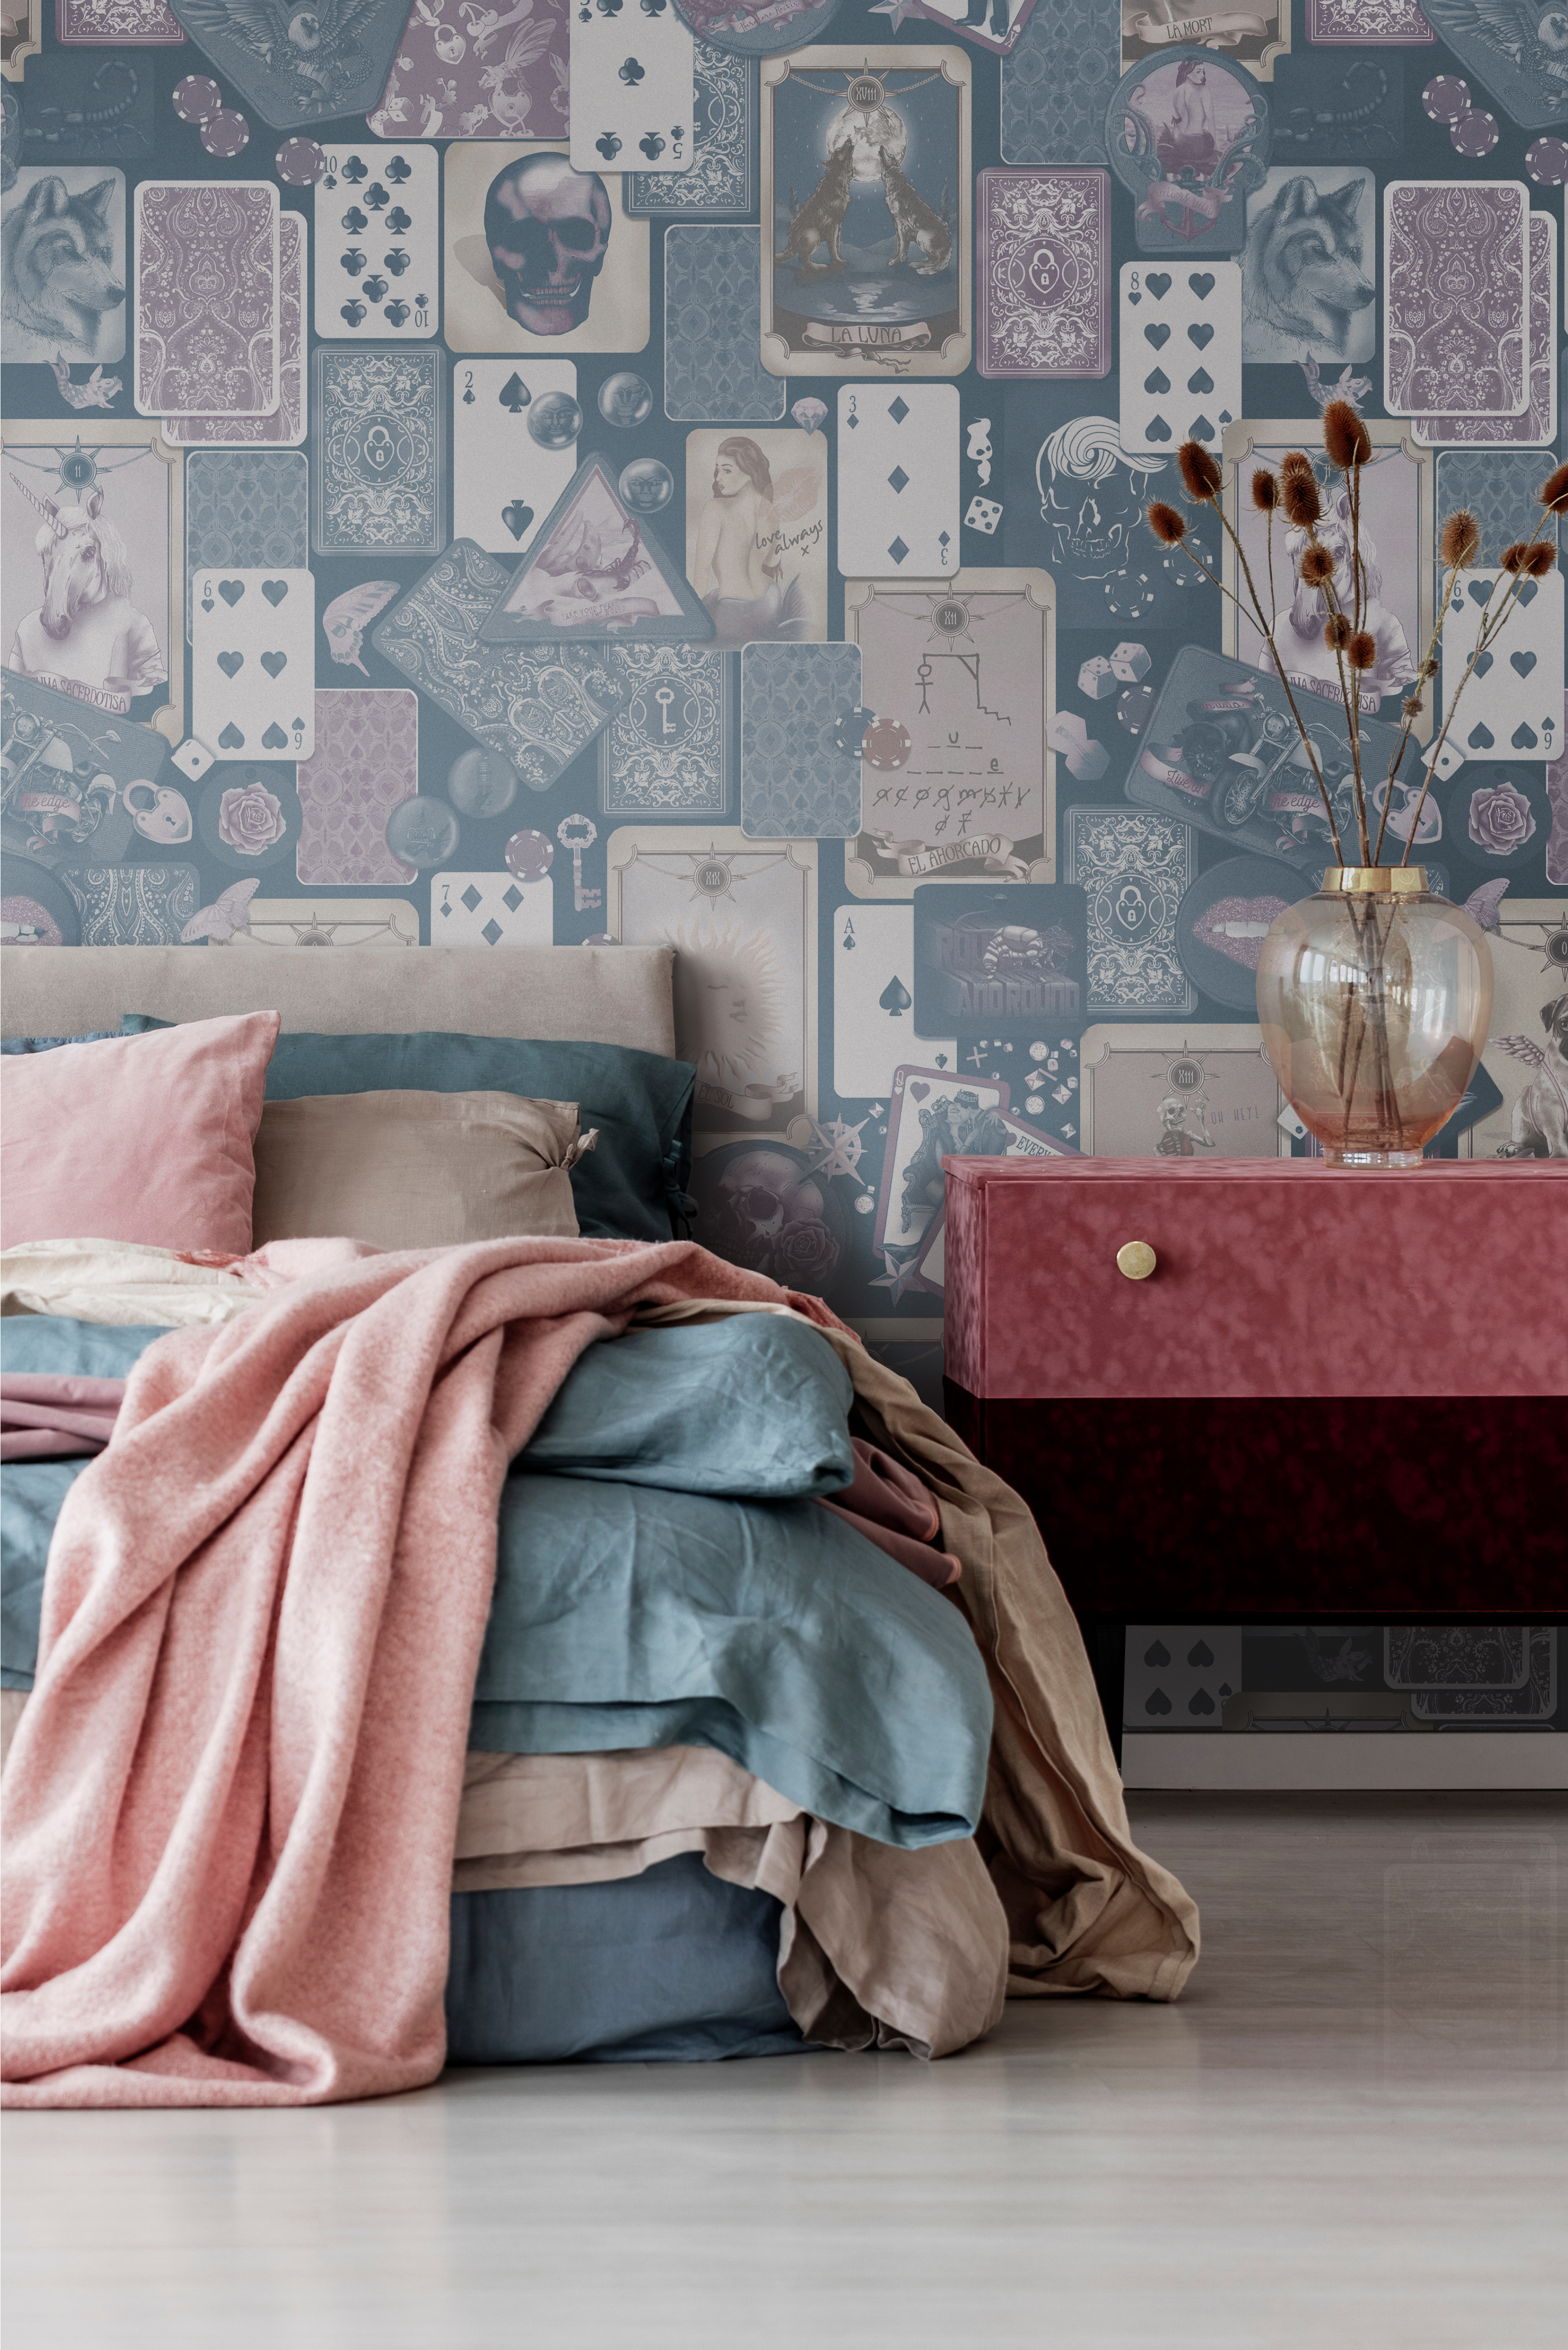 Wallpaper For Walls Australia - Gorgeous bedroom inspiration and design style inspo. In colours of beige, steel blue, mauve and pink. Gold bedside tables. Amazing Statement Wallpaper Designs